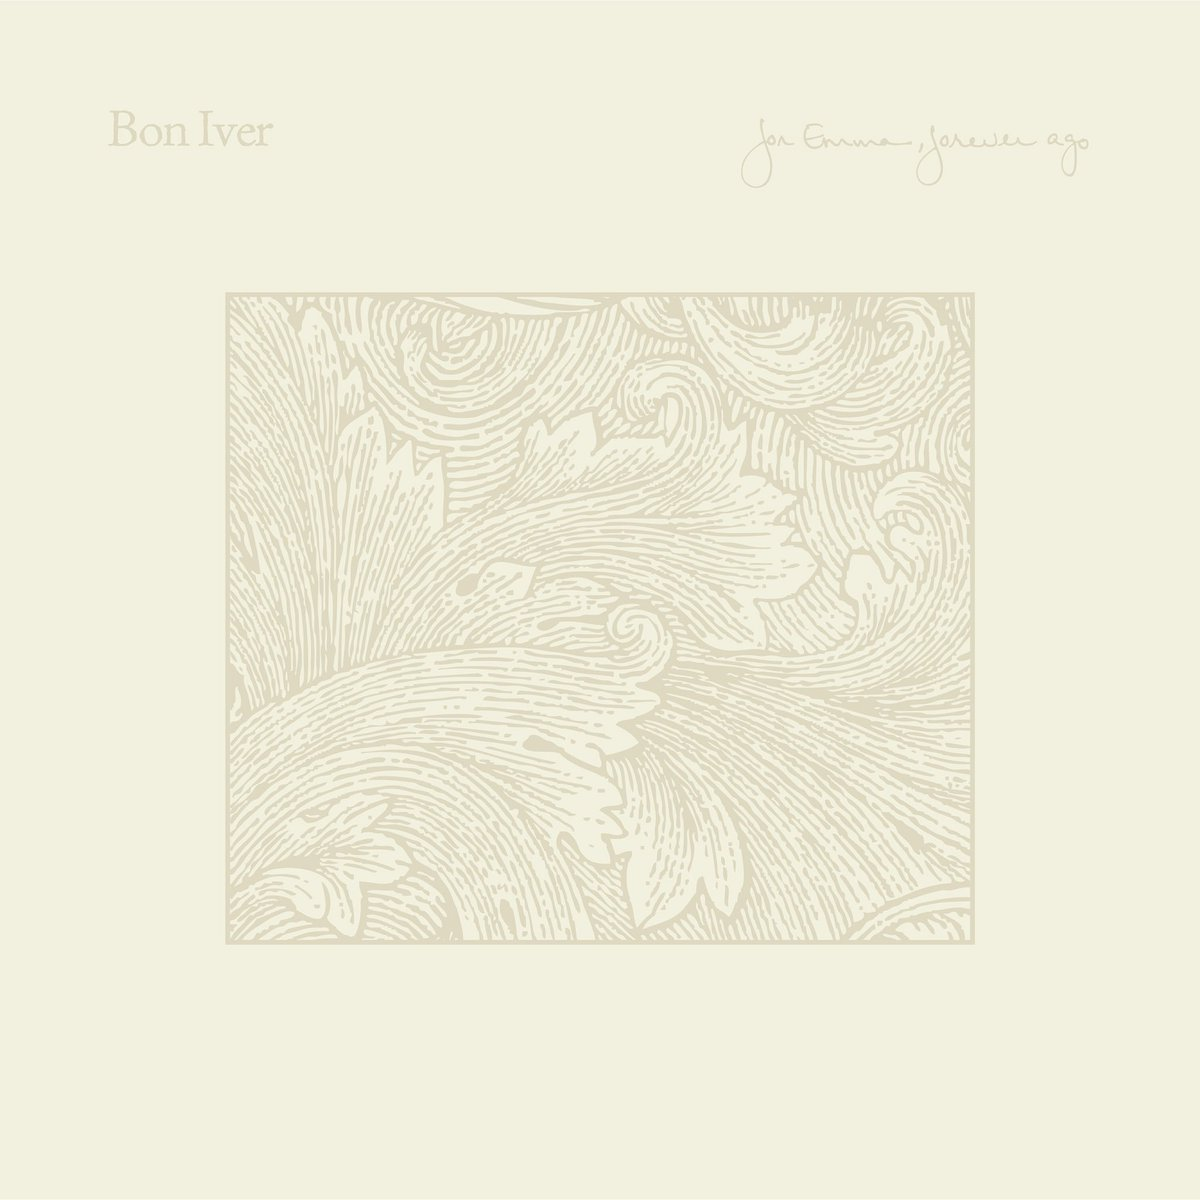 Bon Iver On Twitter For Emma Is 10 Were Reissuing On Lp Cd 2